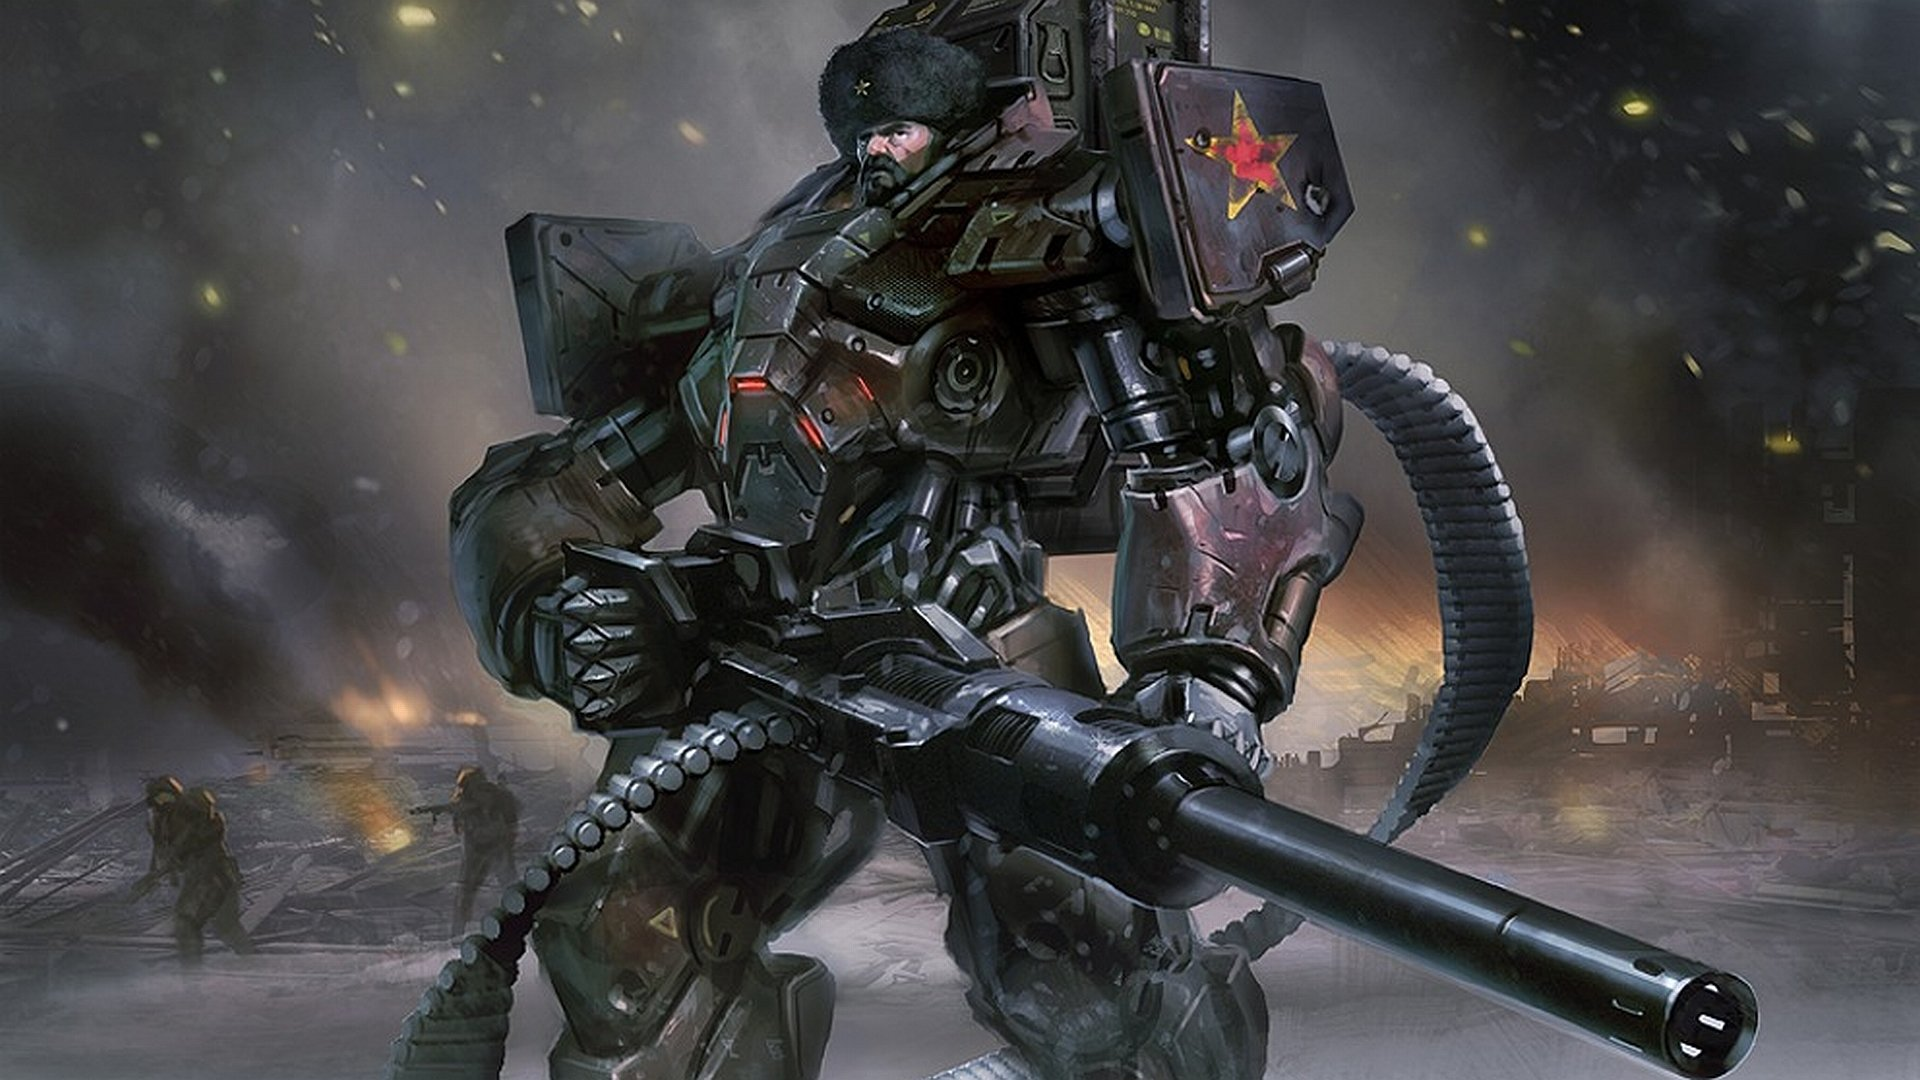 Sci Fi - Warrior  Belt Fed Armor Mecha Russian Wallpaper